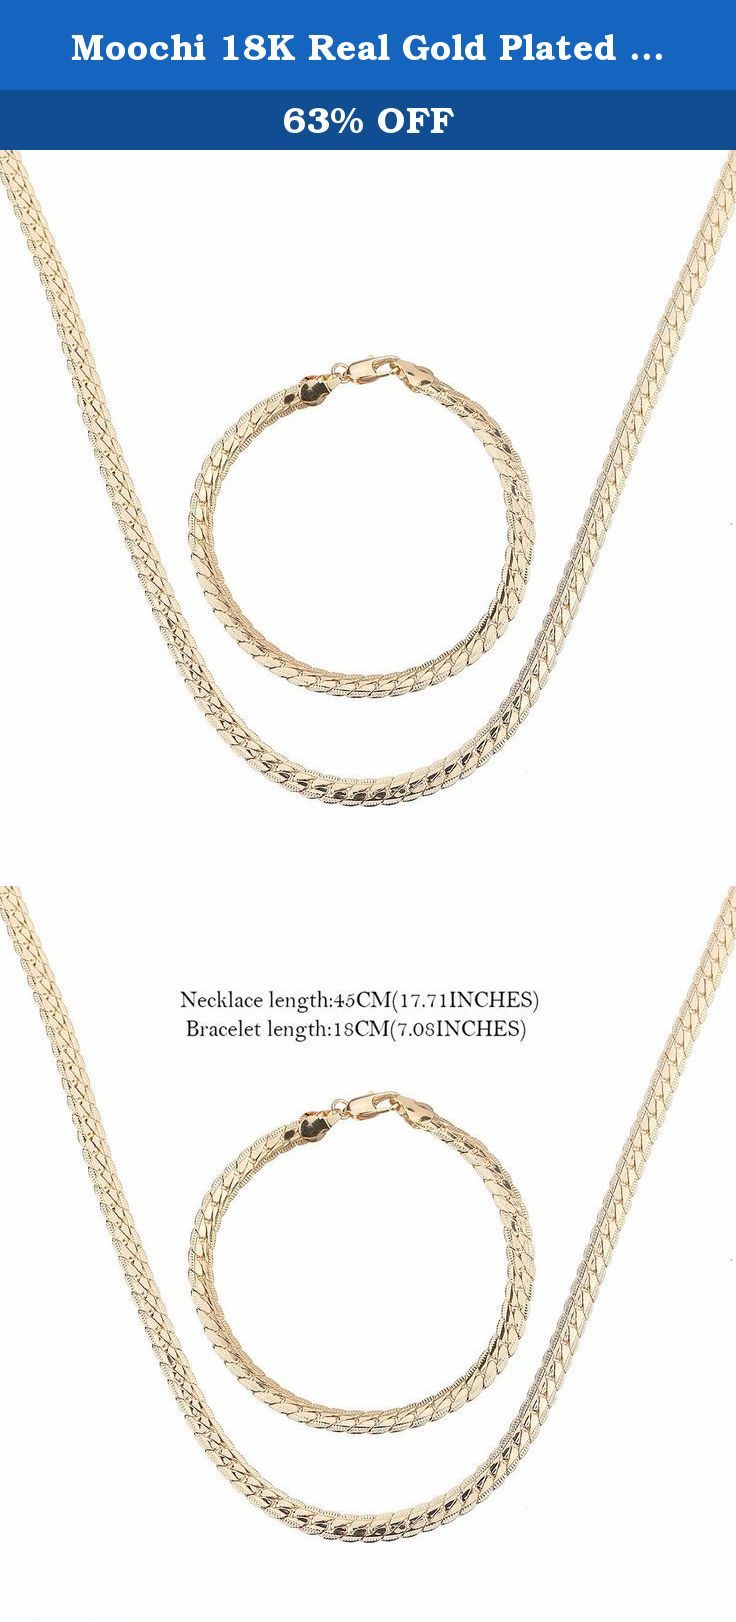 Moochi 18K Real Gold Plated Long Snake Curb Chain Necklace Bracelet Jewelry Set. This gold plated jewelry set is shinning and beautiful. The color will not fade and we have one year warrant. It is the best gift for yourself, your friends and family.